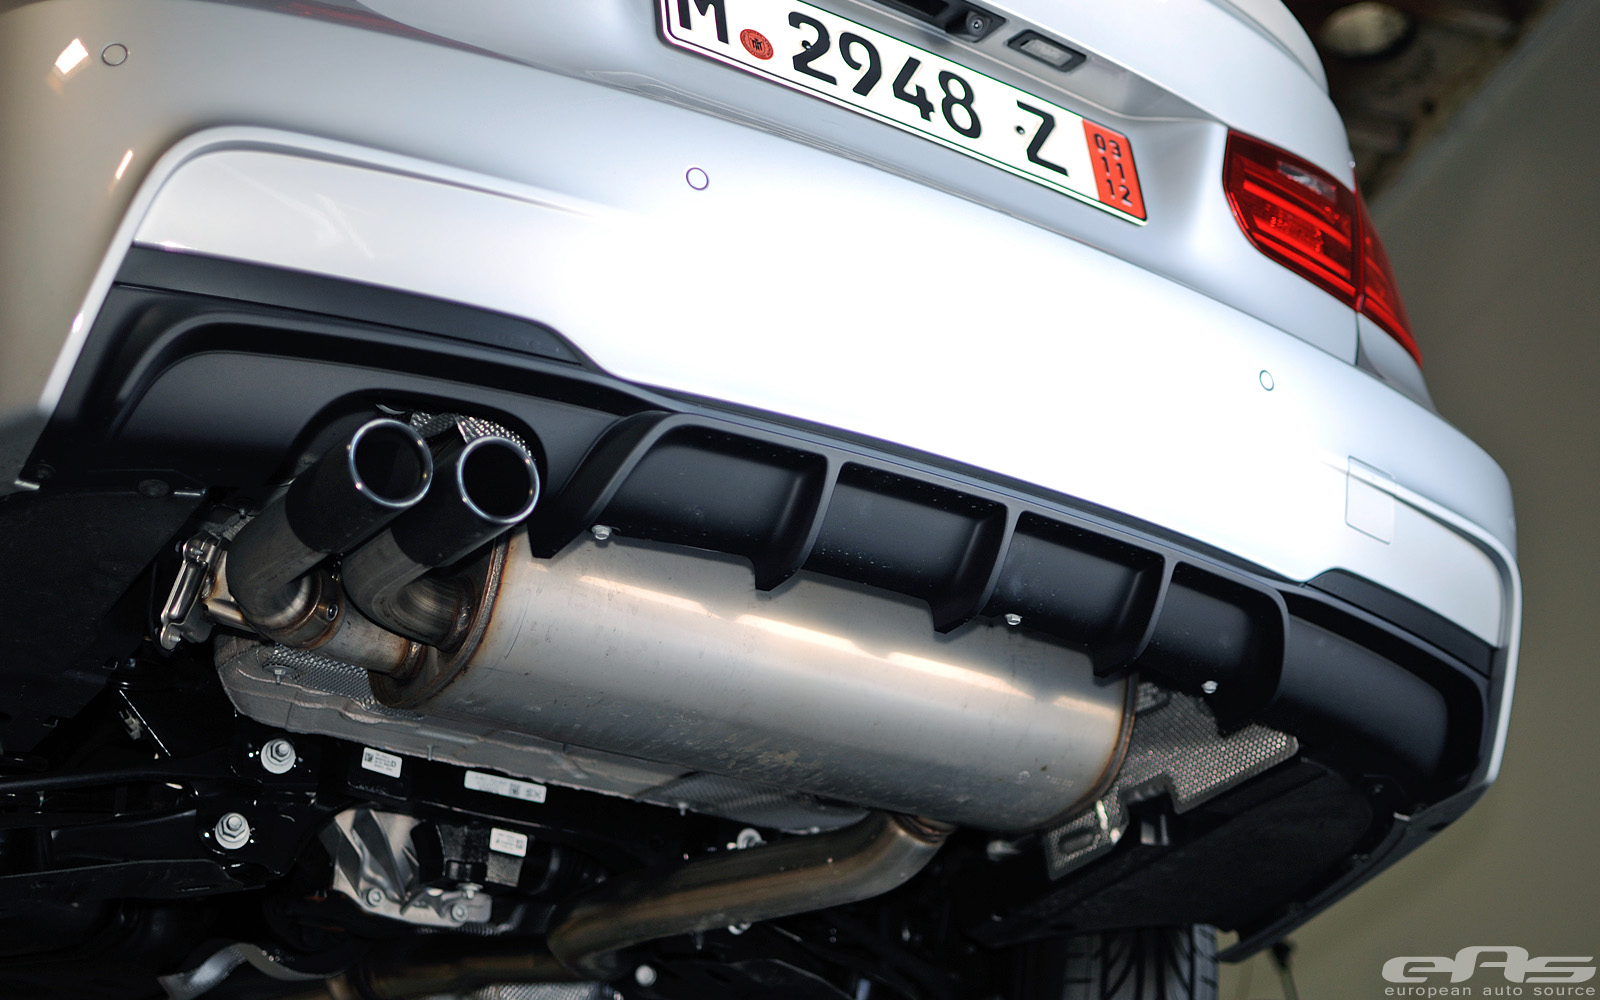 TiAg M Performance F30 328i   BMW Performance Parts & Services